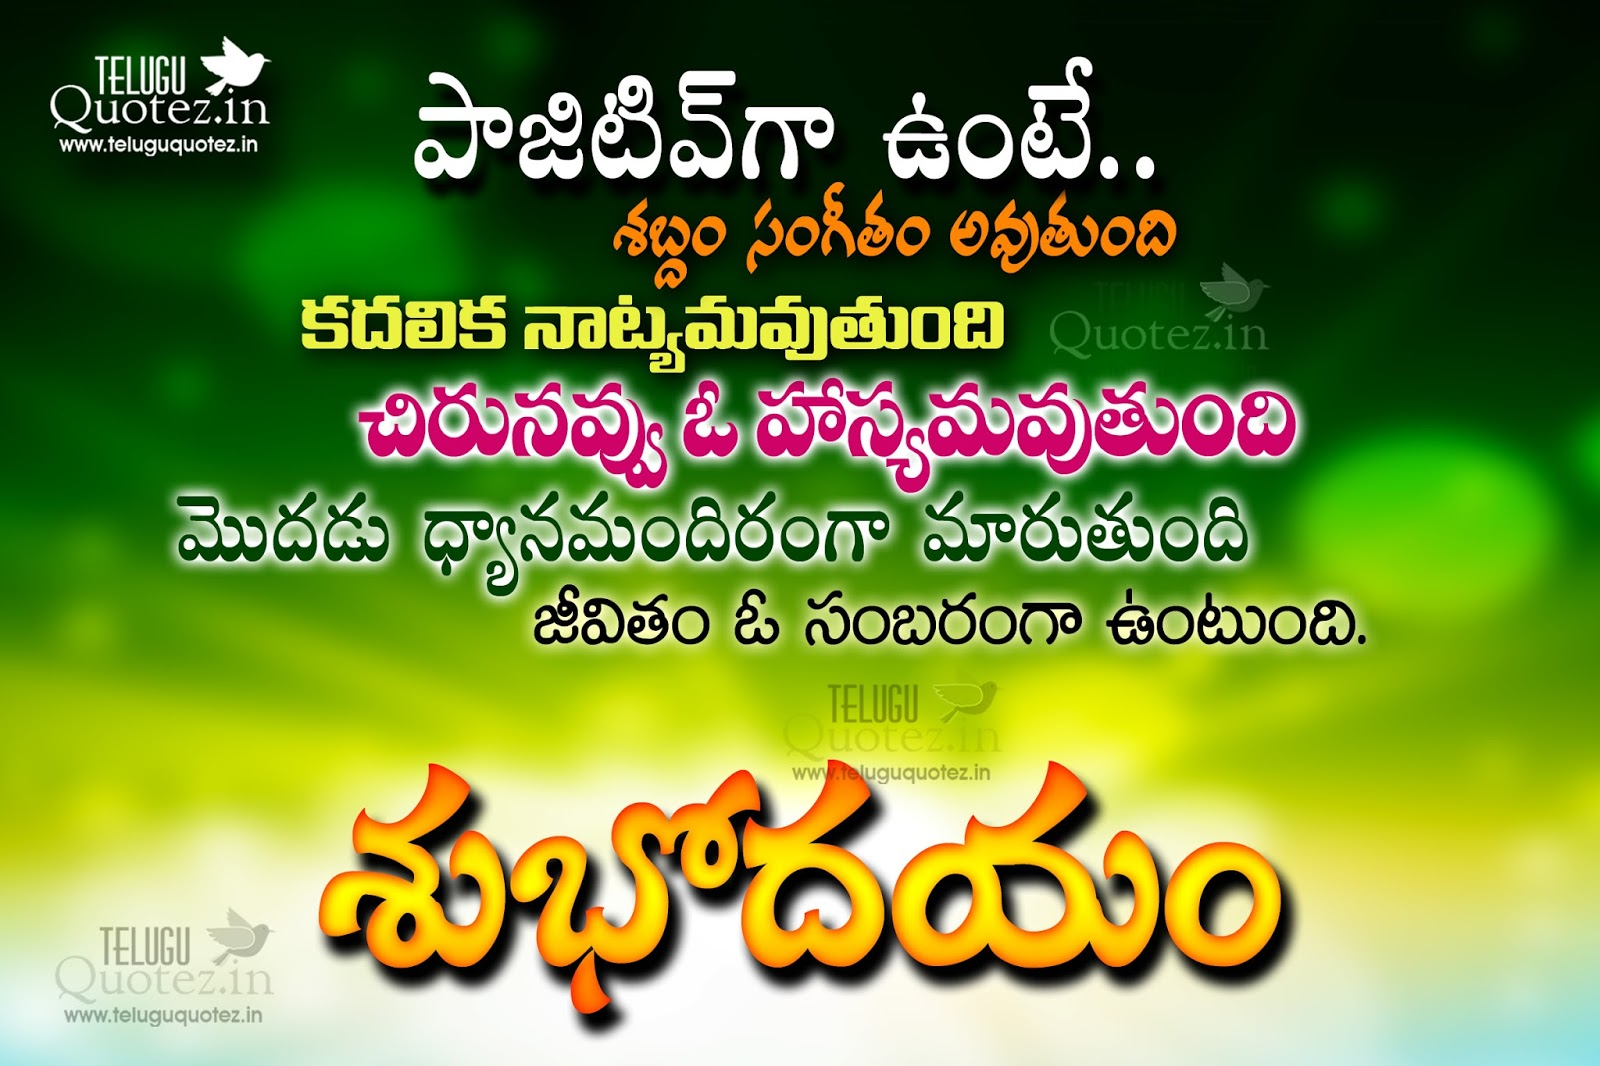 Telugu most unseen good morning original wedding invitations positive greetings holiday card sayings for business good morning nice hindi life quotes and wishes teluguquotez kristyandbryce Images